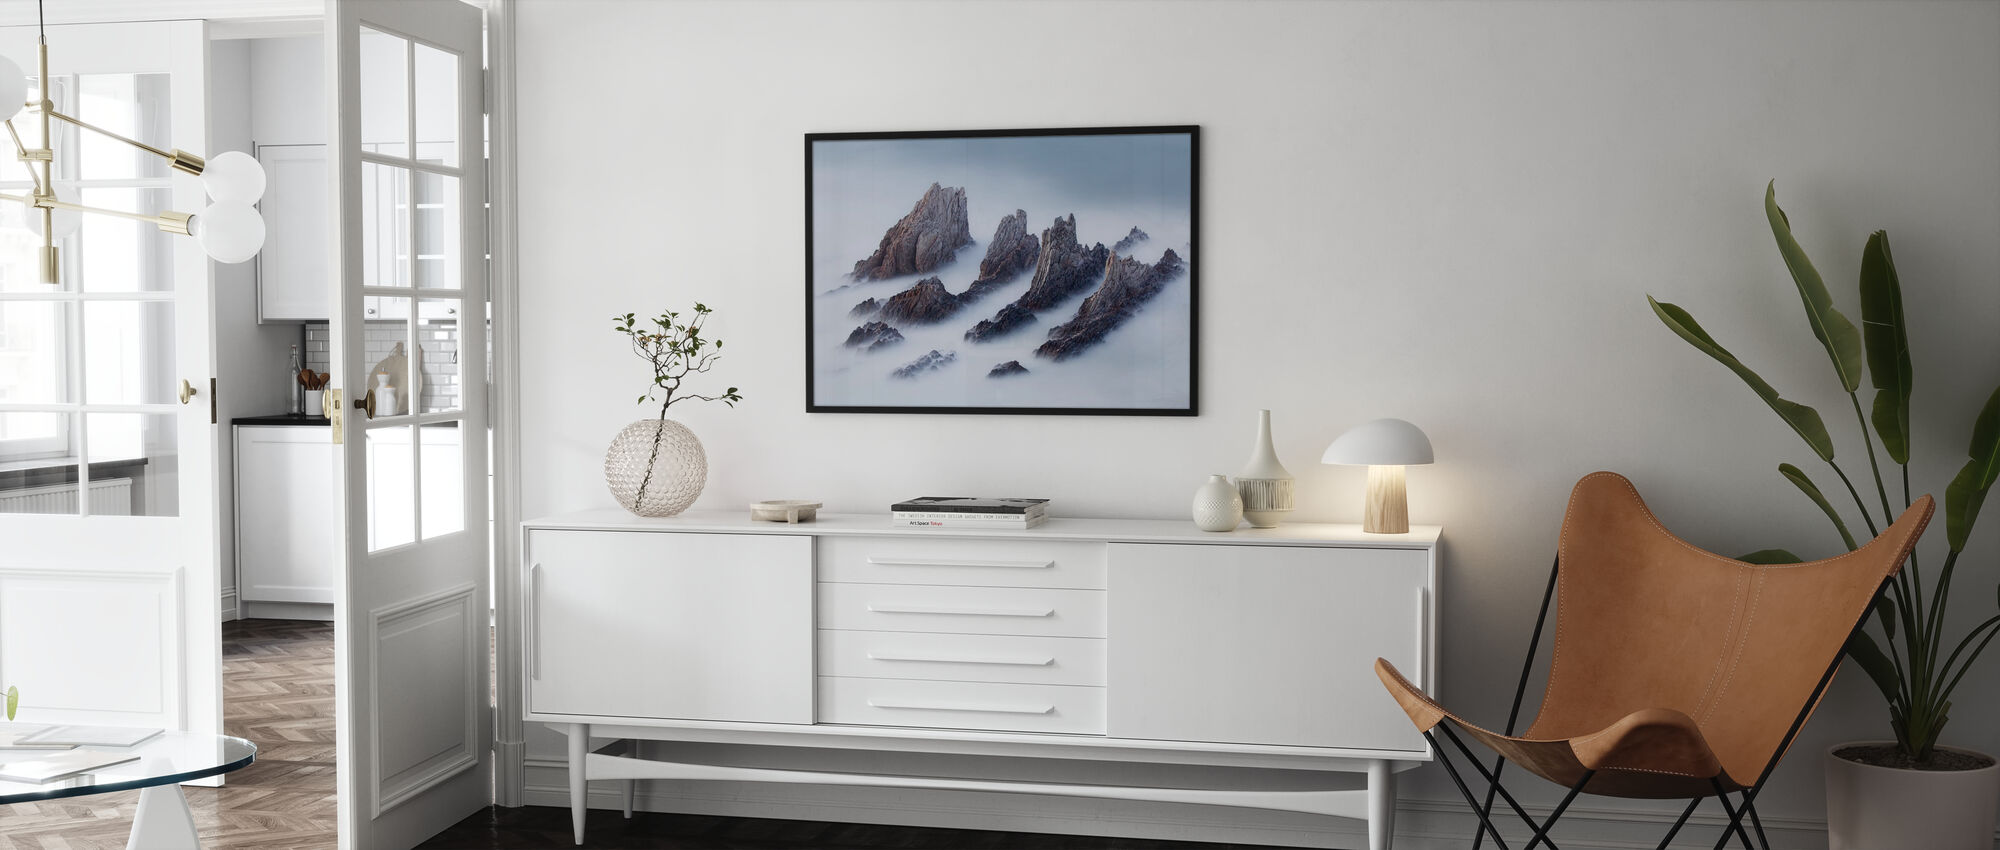 Crests and Valleys - Poster - Living Room